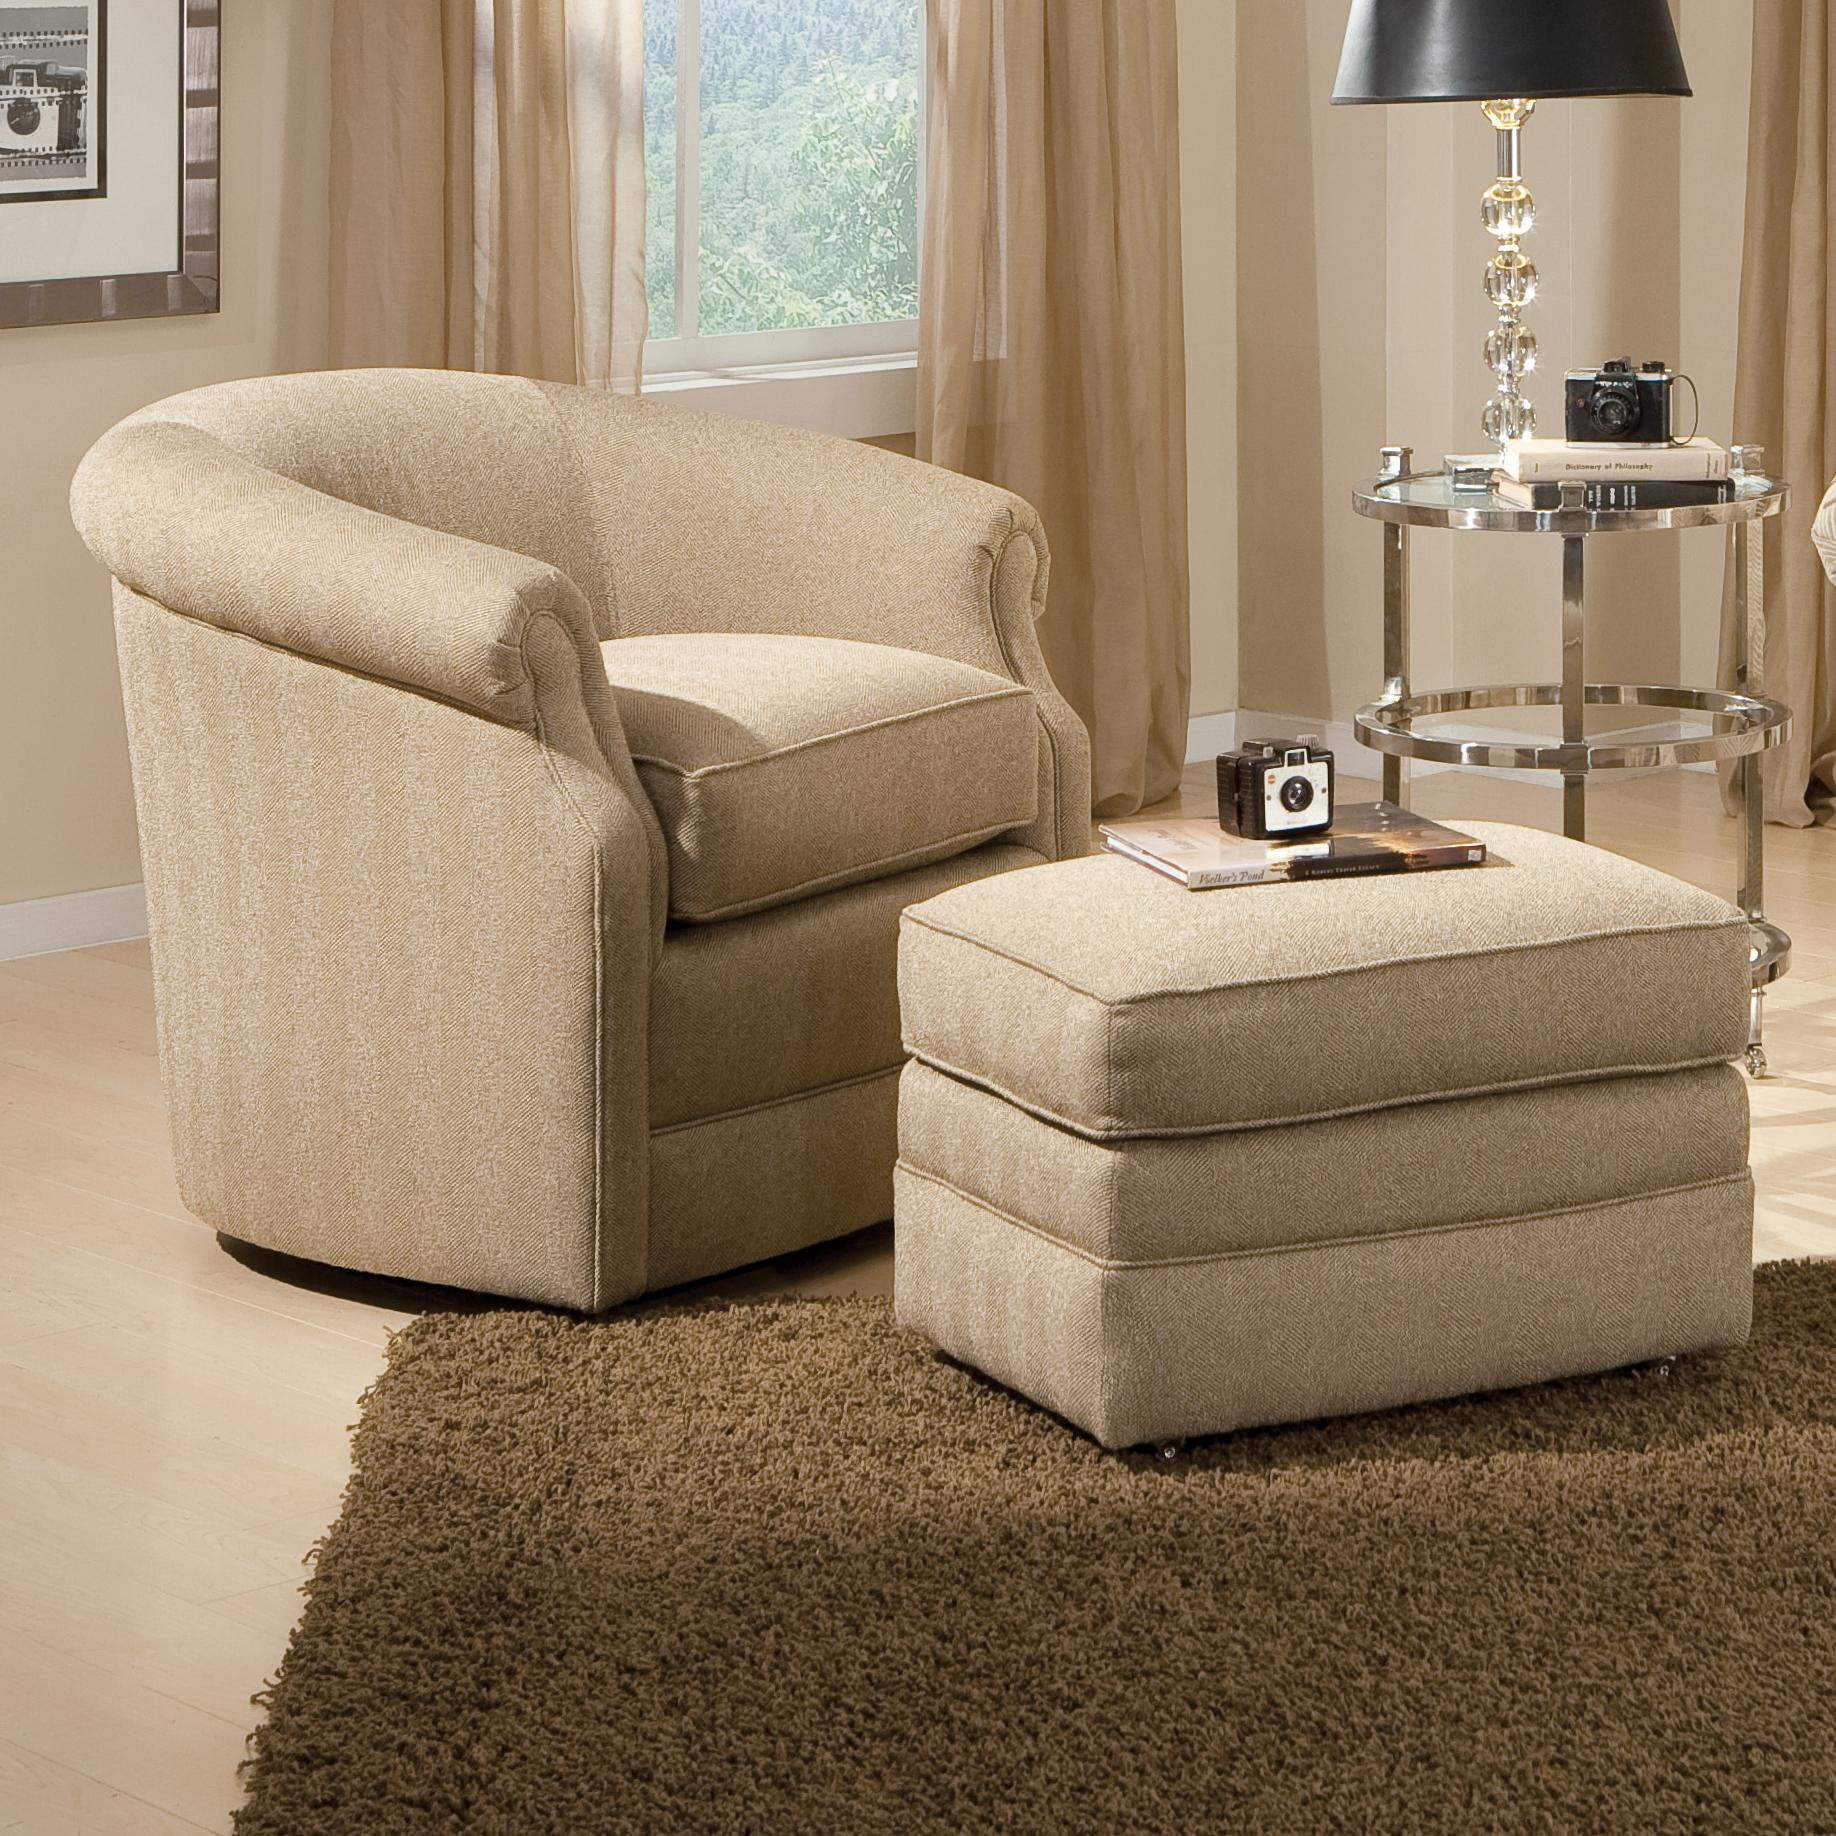 Barrel Swivel Chair and Ottoman with Casters